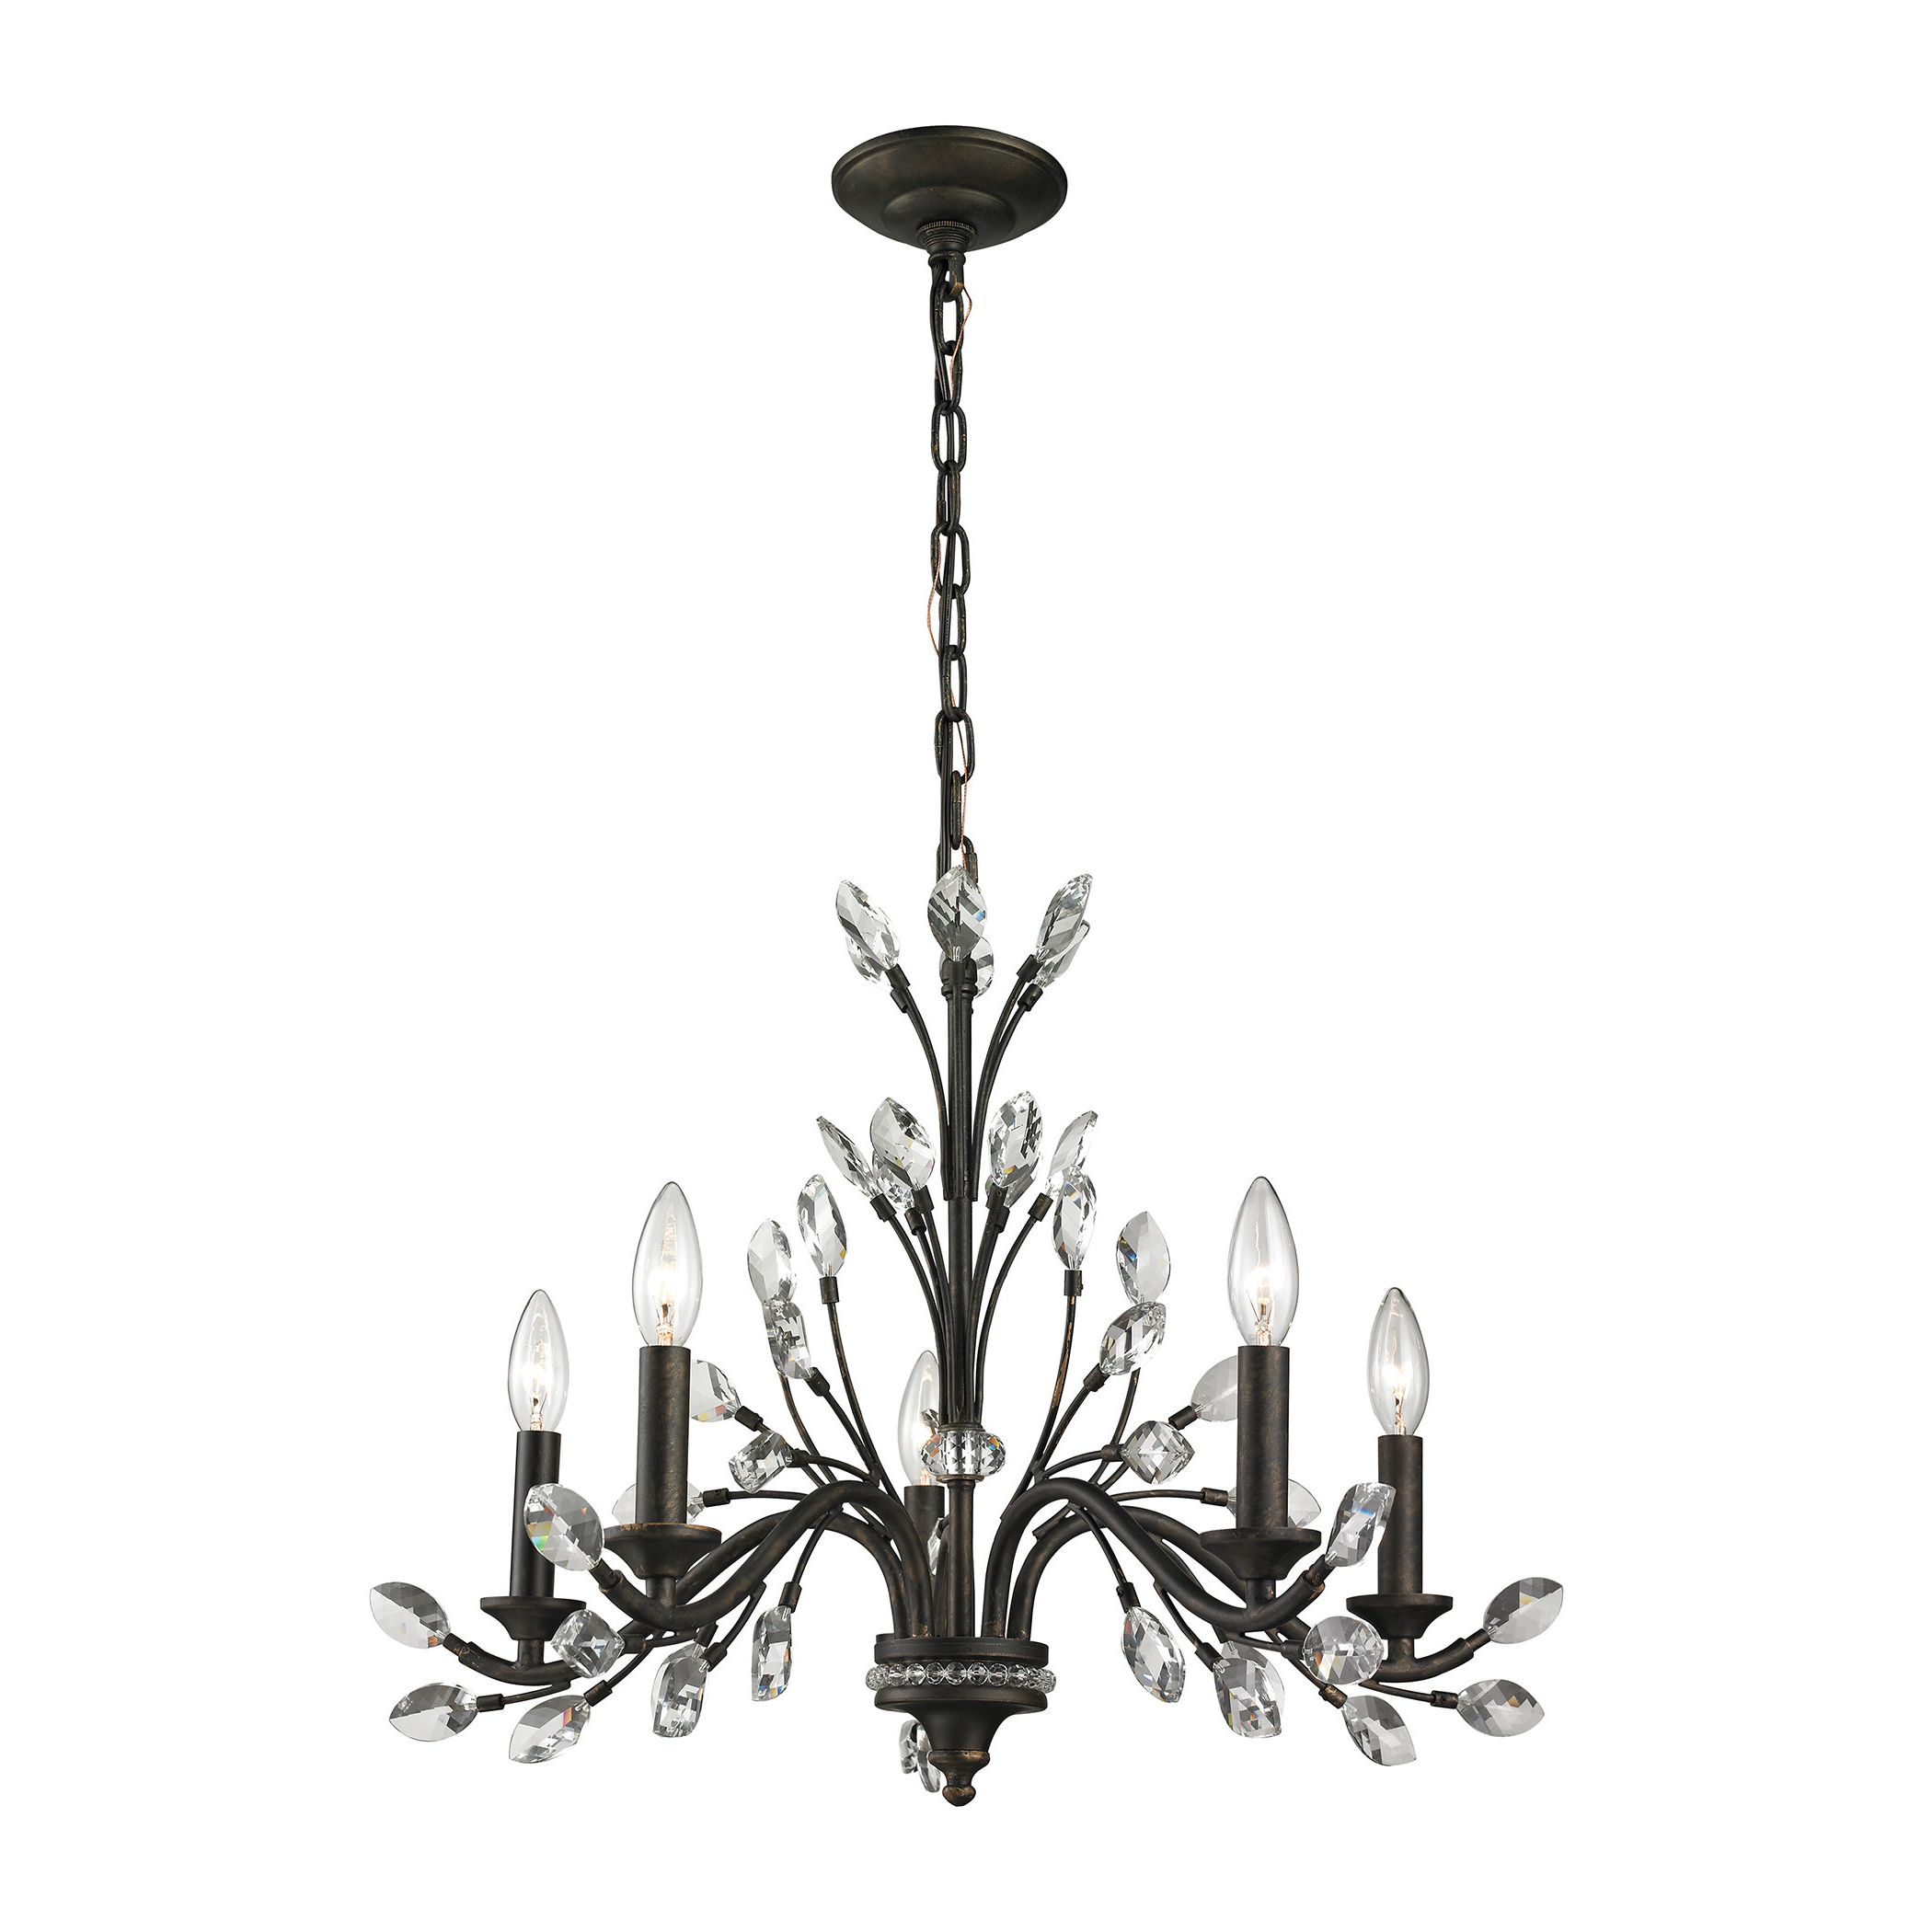 Berger 5-Light Candle Style Chandeliers throughout Well known Hammel 5-Light Candle Style Chandelier